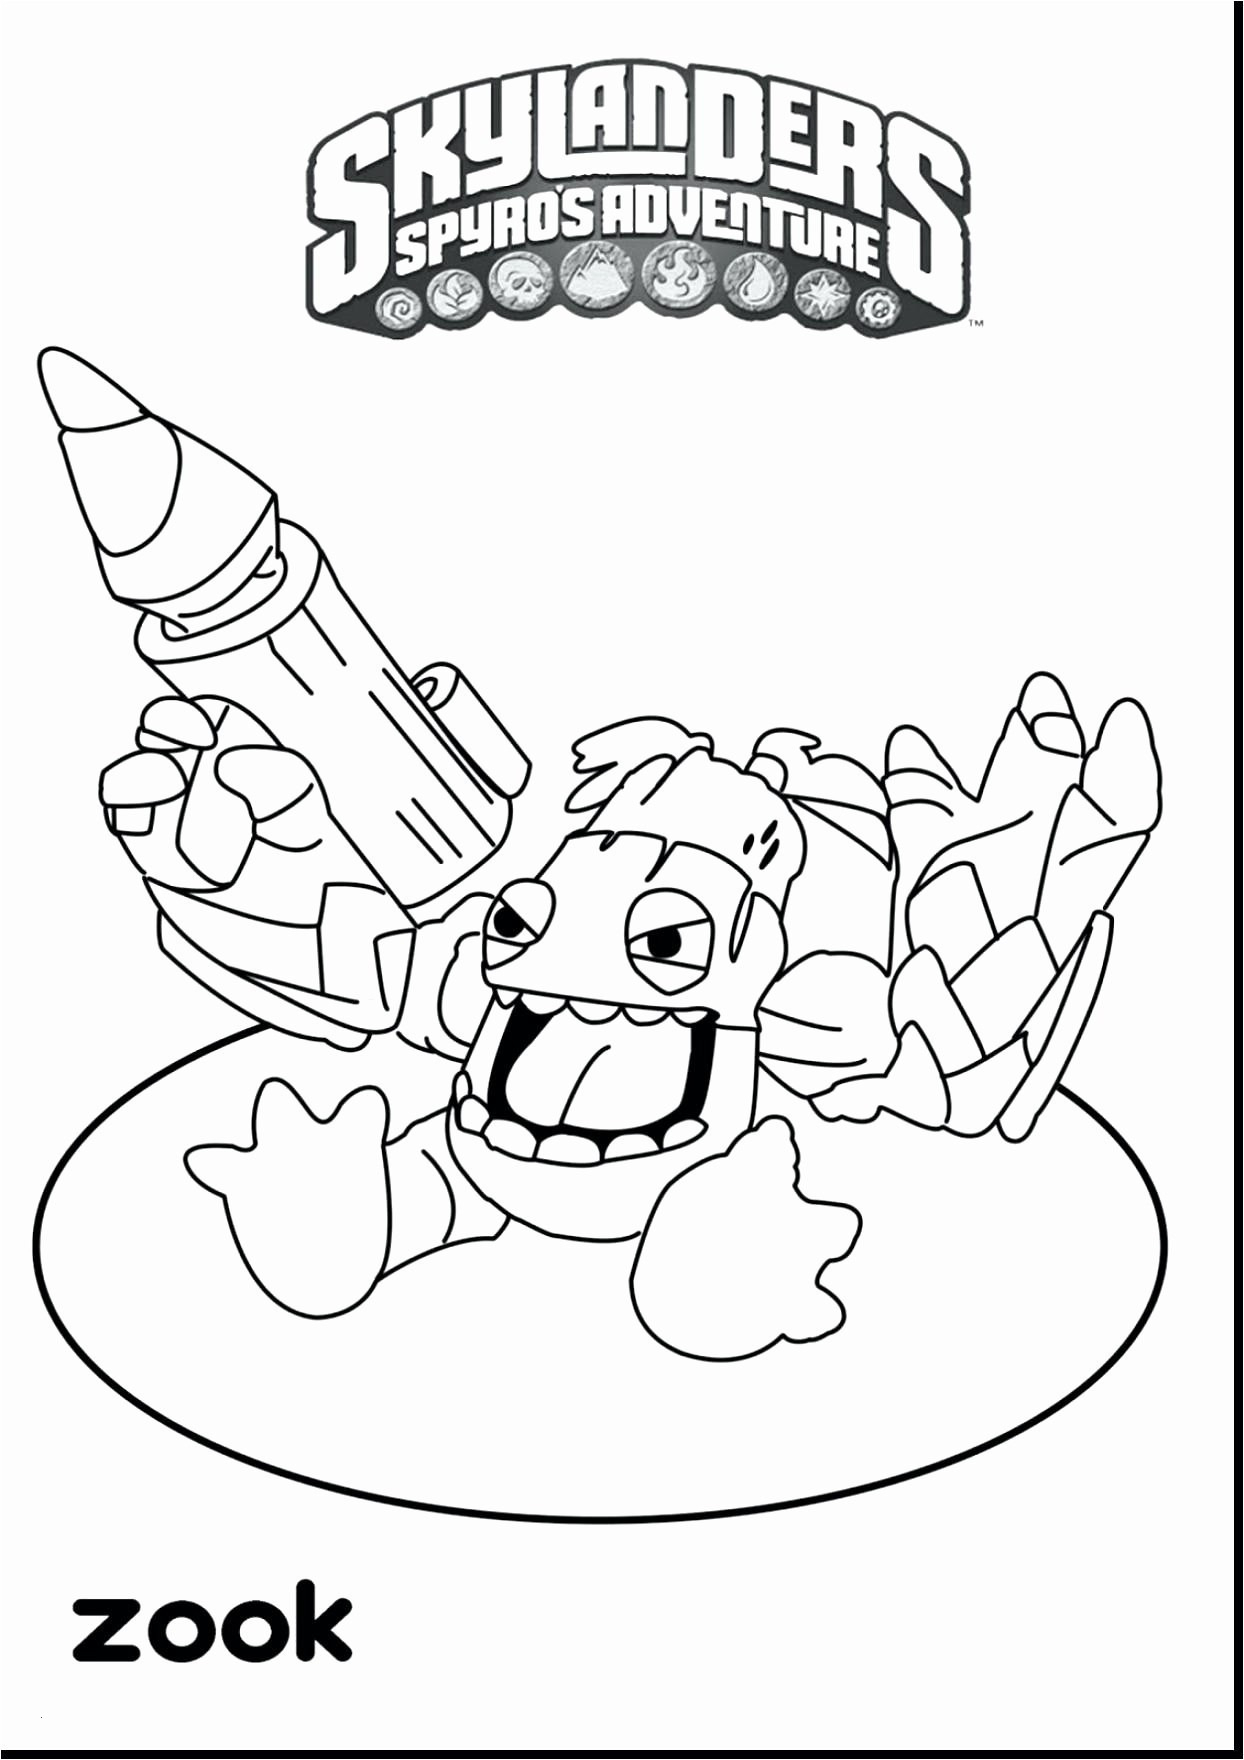 wedding coloring pages to print Collection-Dress Coloring Pages Free Printable Wedding Coloring Pages · Cool Coloring Page Inspirational Witch Coloring 9-k